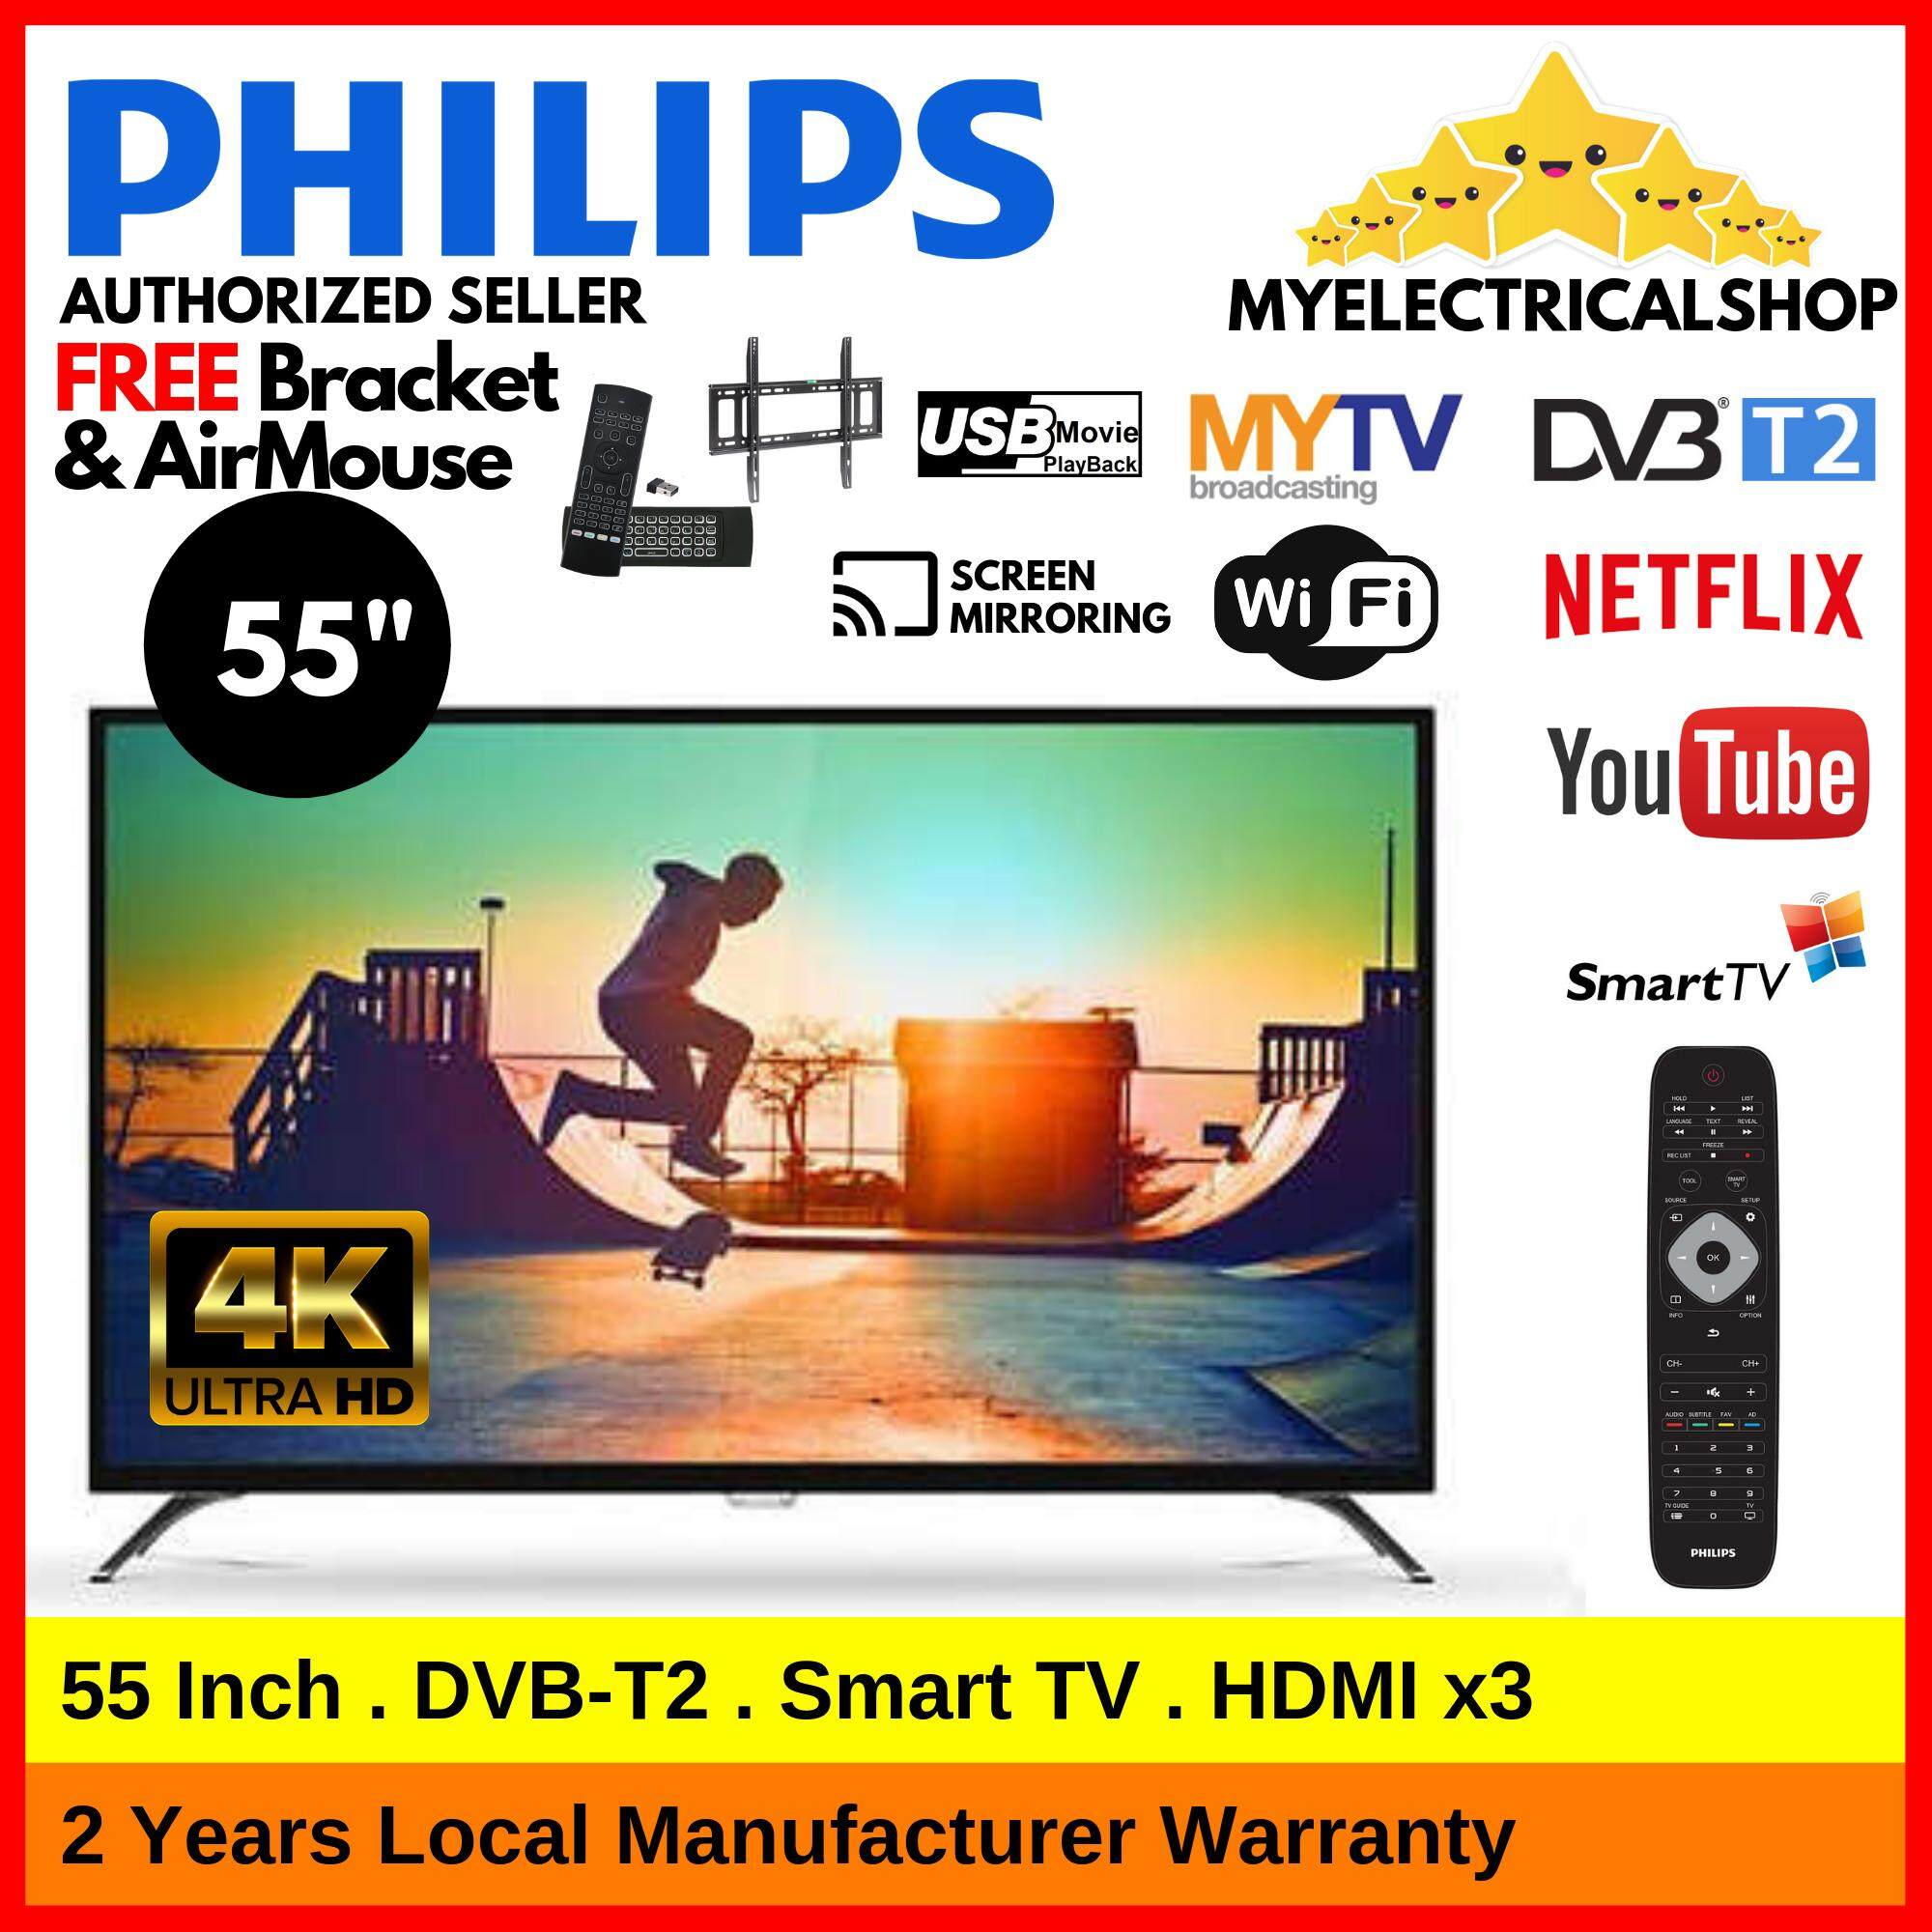 Philips 55PUT6002 / 55PUT6002S Smart TV 55 Inch 4k Ultra HD UHD Can  Received DVB-T2 DTTV IDTV MYTV MYFREEVIEW ( This Month OFFER : FREE TV  Bracket &